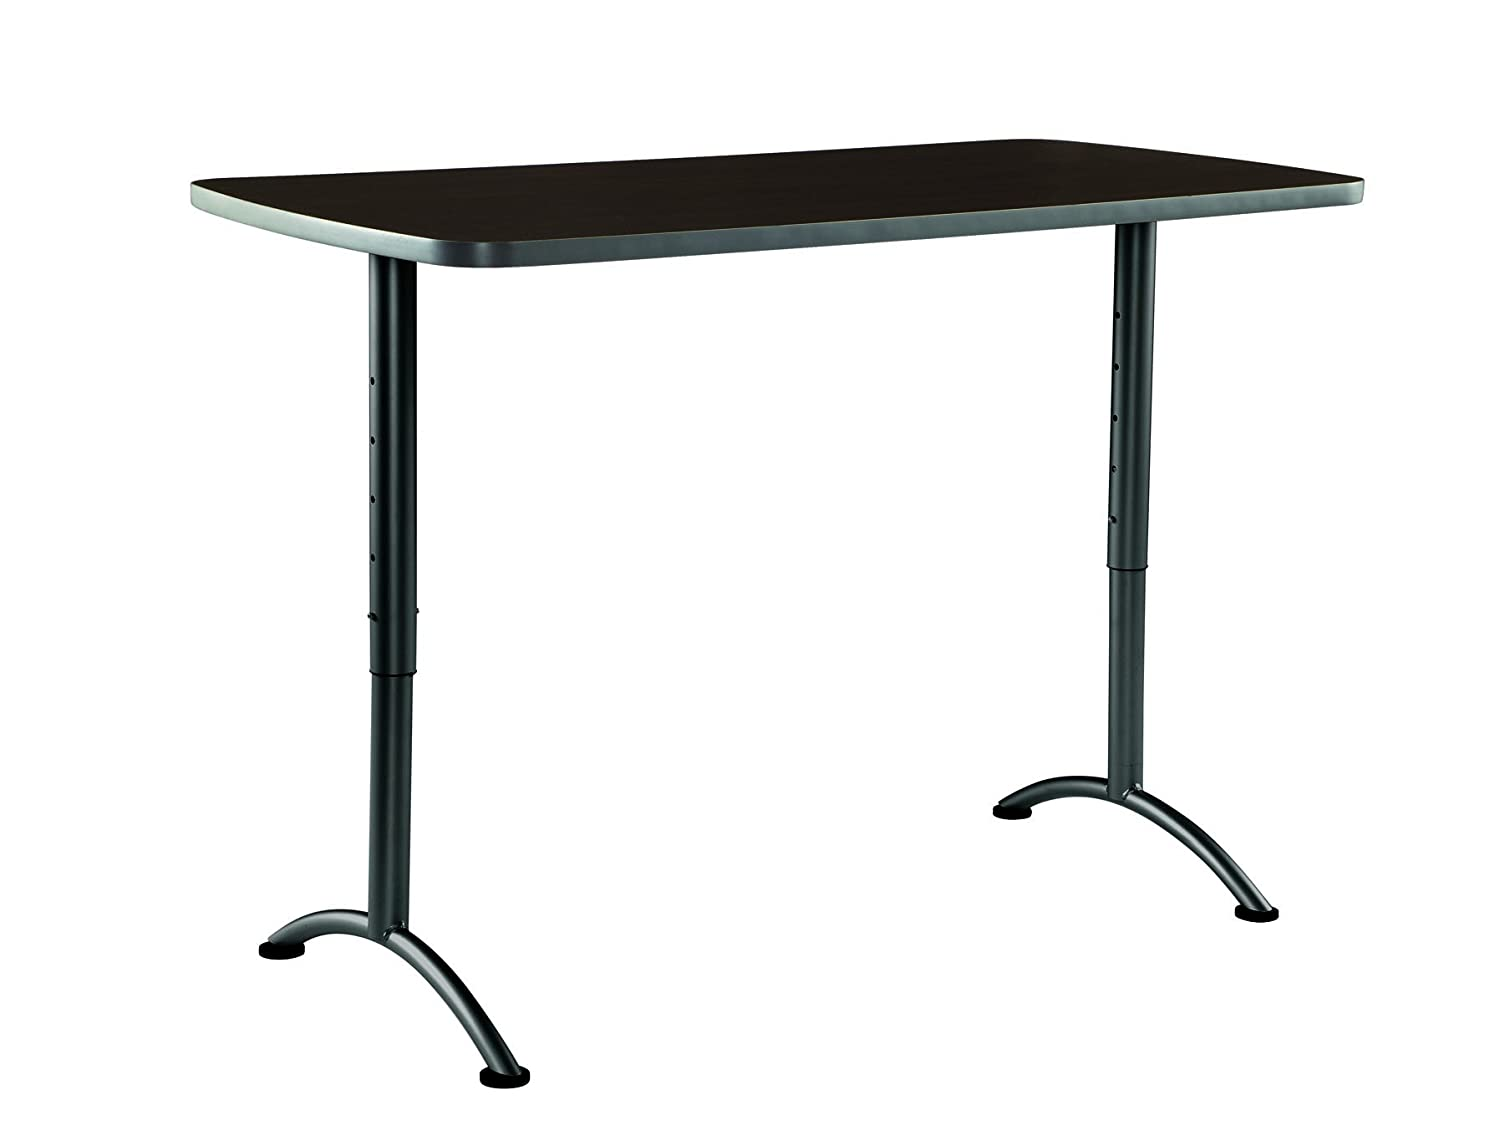 "Iceberg ICE69314 ARC 5-foot Adjustable Height Rectangular Conference Table, 30"" x 60"", Walnut/Gray Leg"